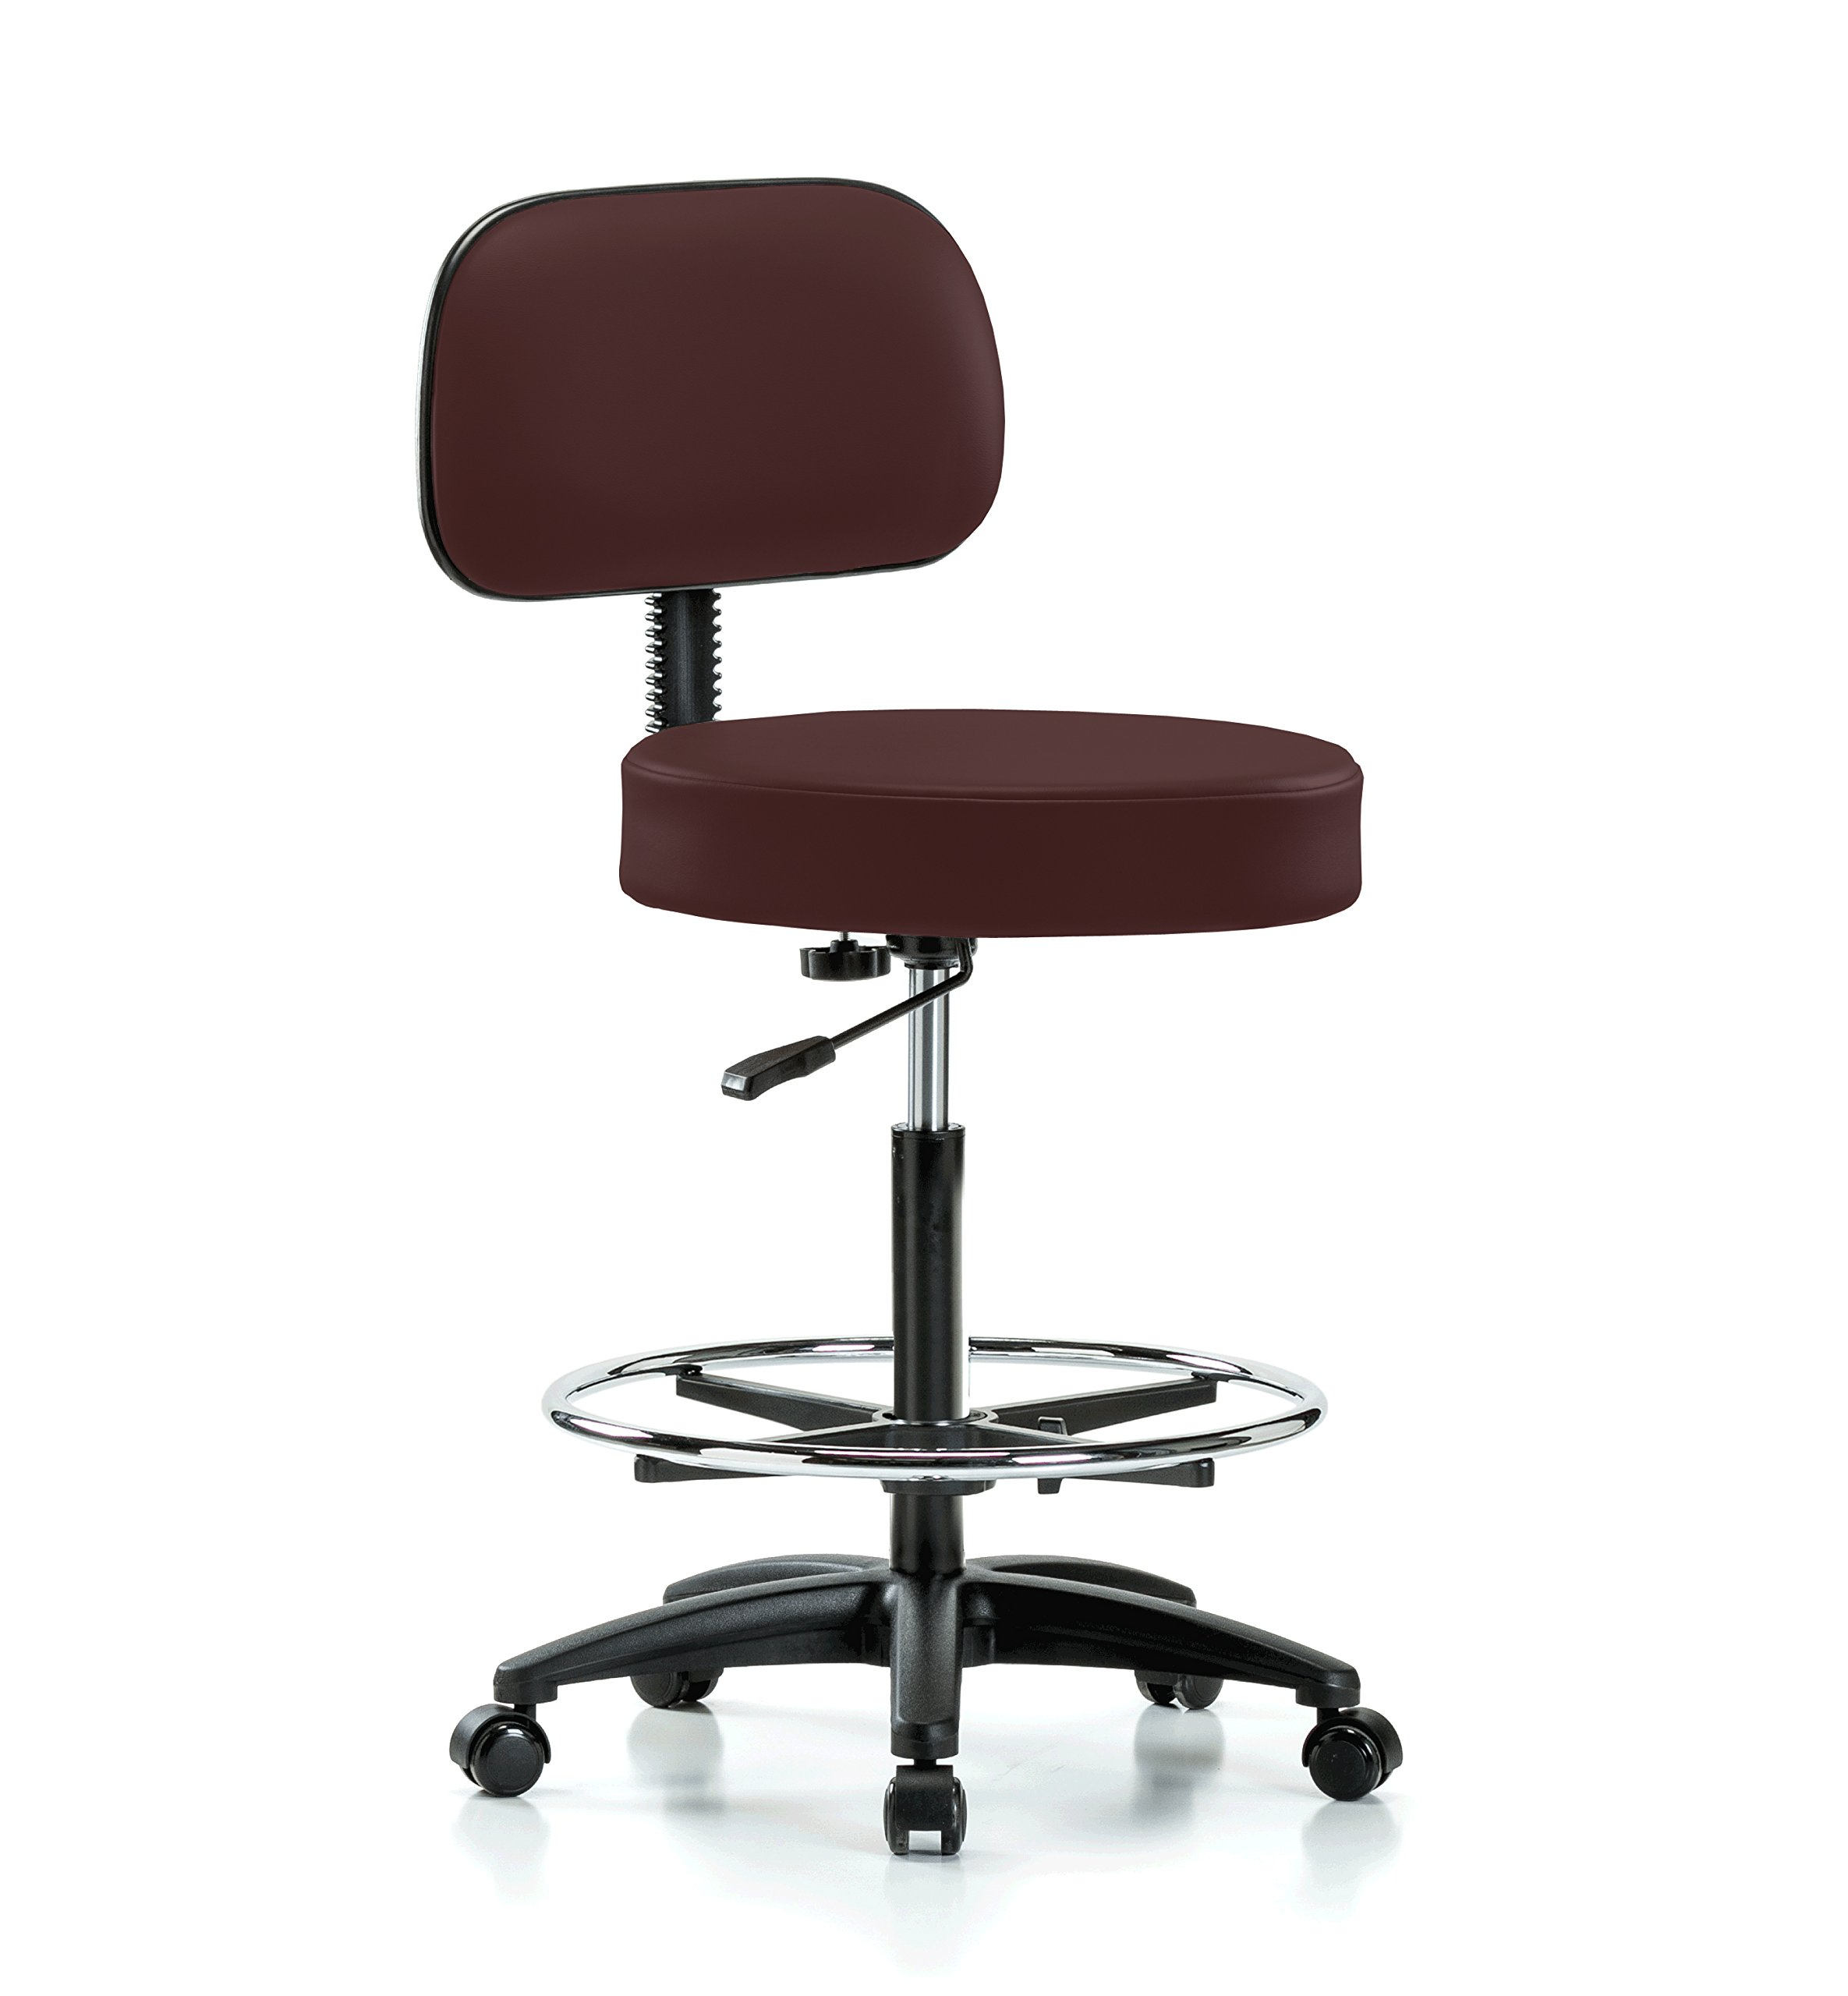 Perch Rolling Walter Exam Office Stool with Footring and Adjustable Backrest for Medical Dental Spa Salon Massage Lab or Workshop 25'' - 35'' (Hard Floor Casters/Burgundy Vinyl)